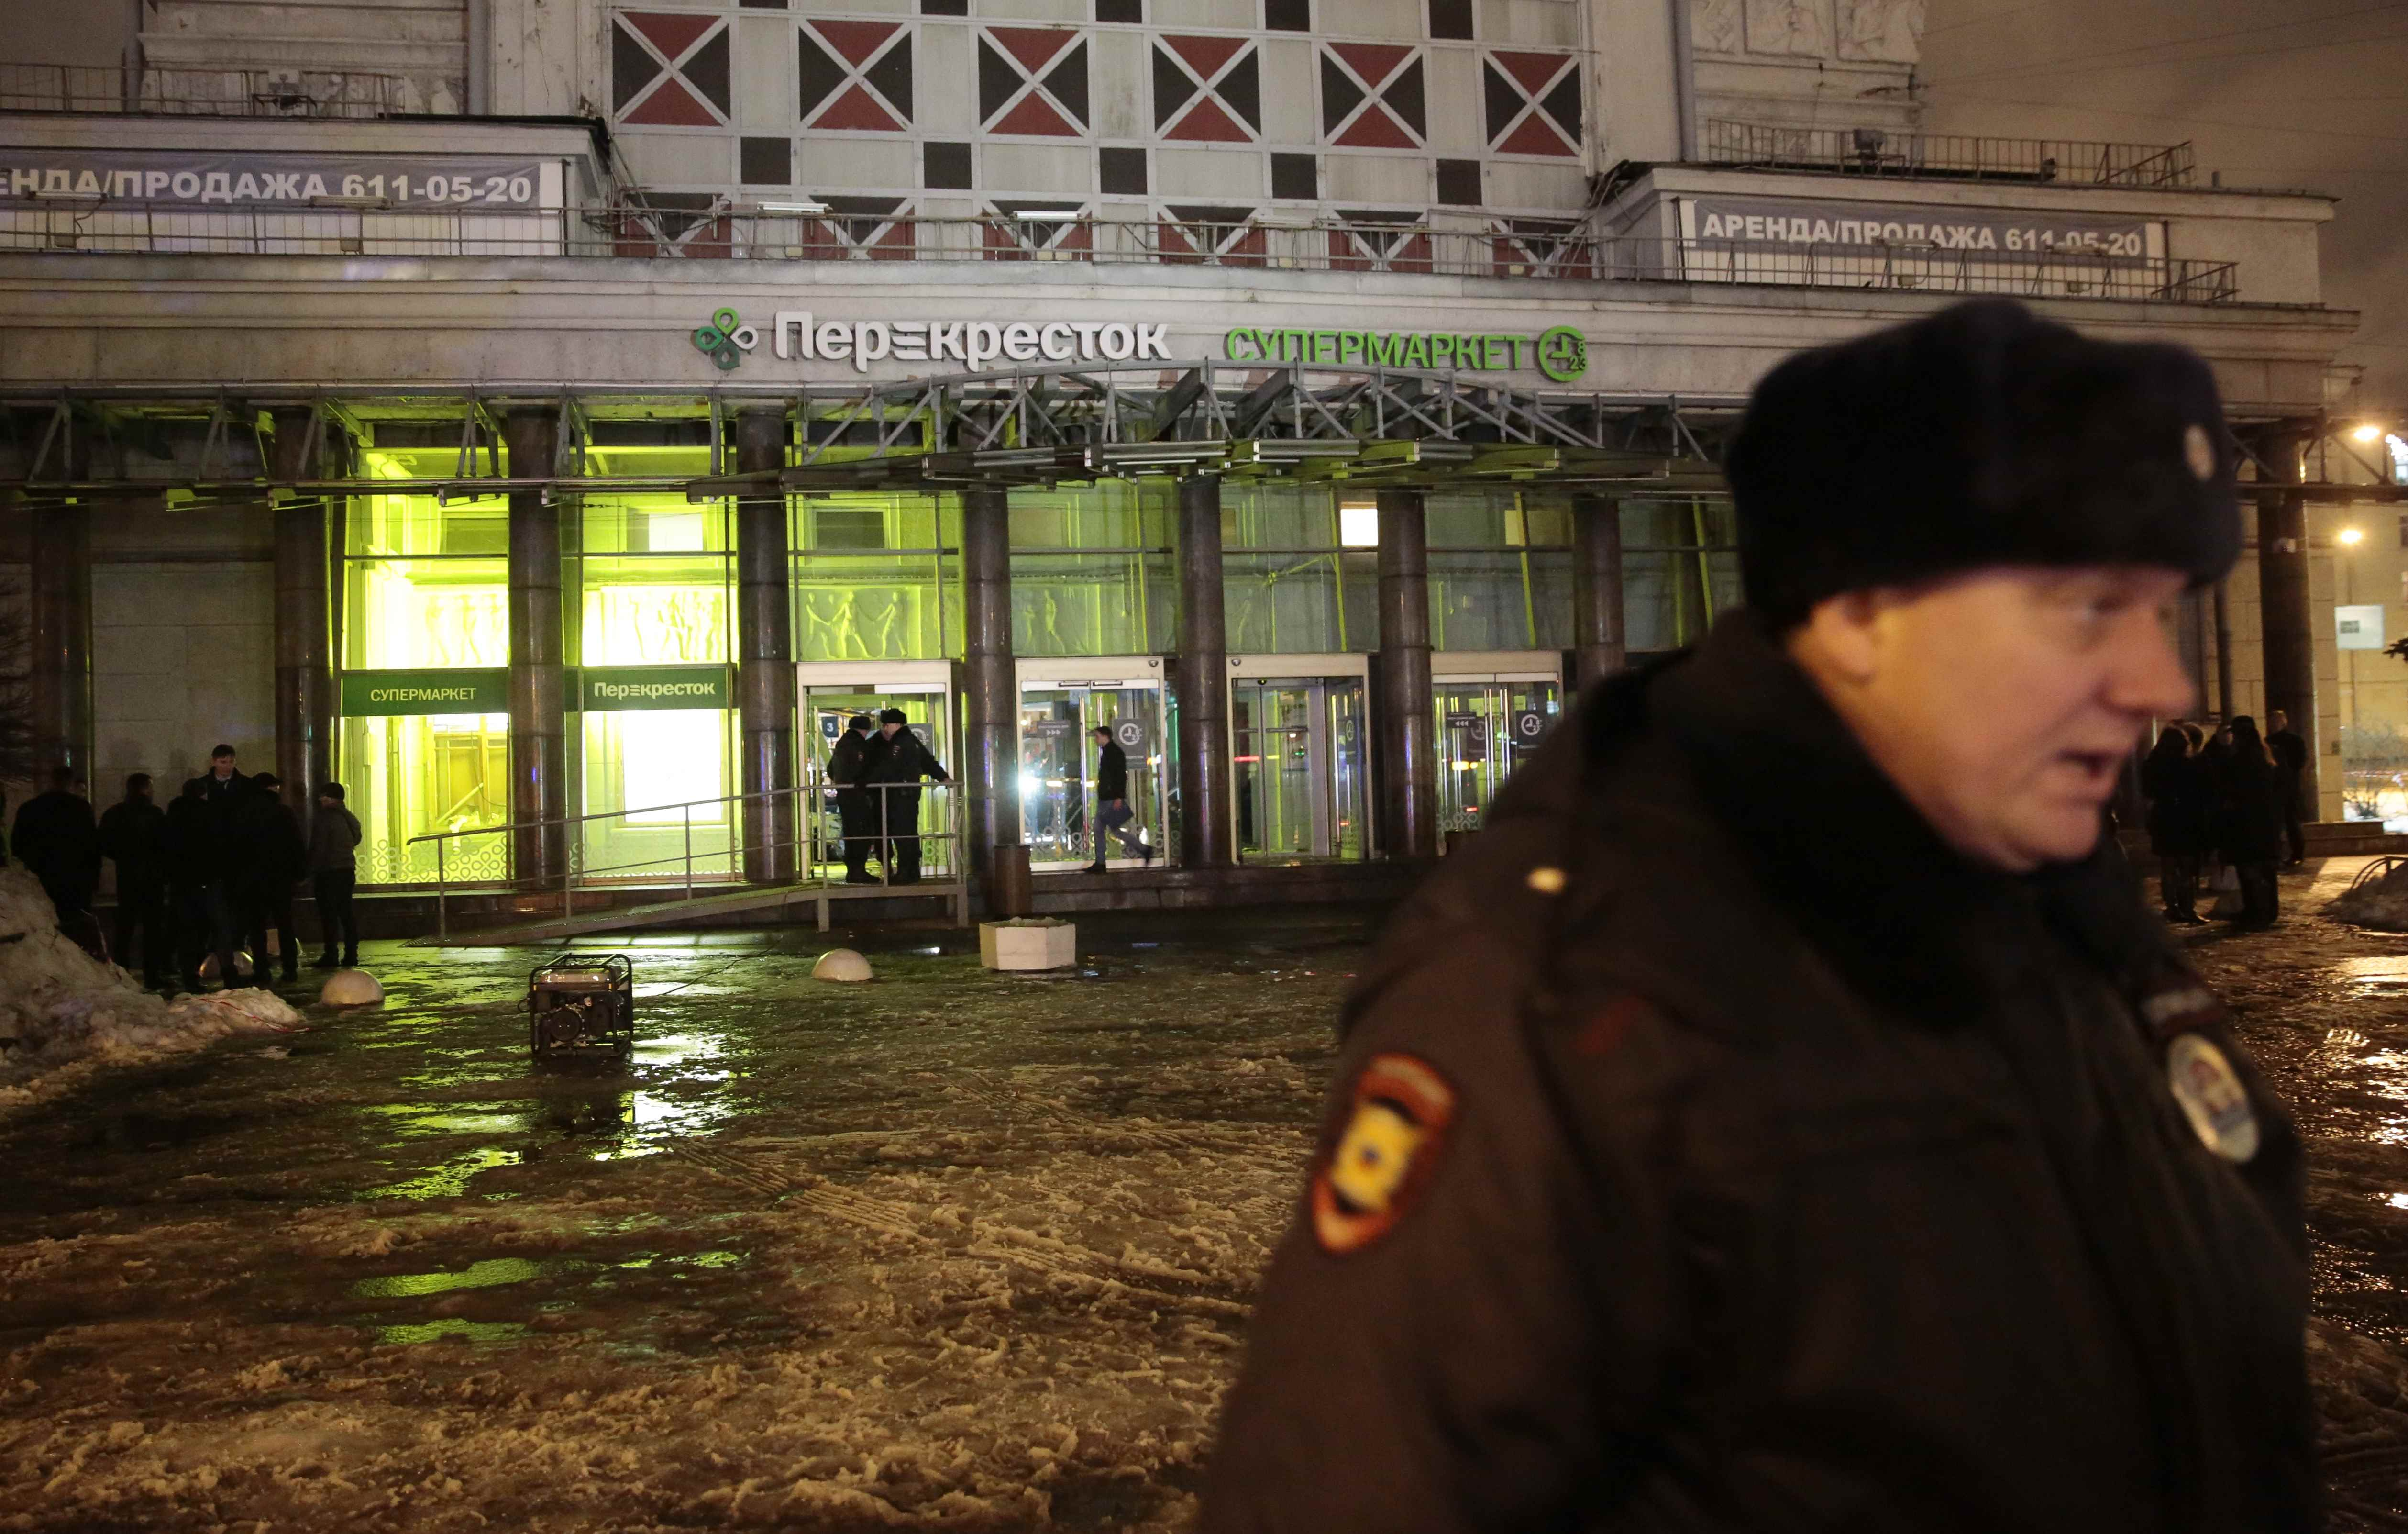 A policeman stands guard near a supermarket after an explosion in St Petersburg, Russia December 27, 2017.